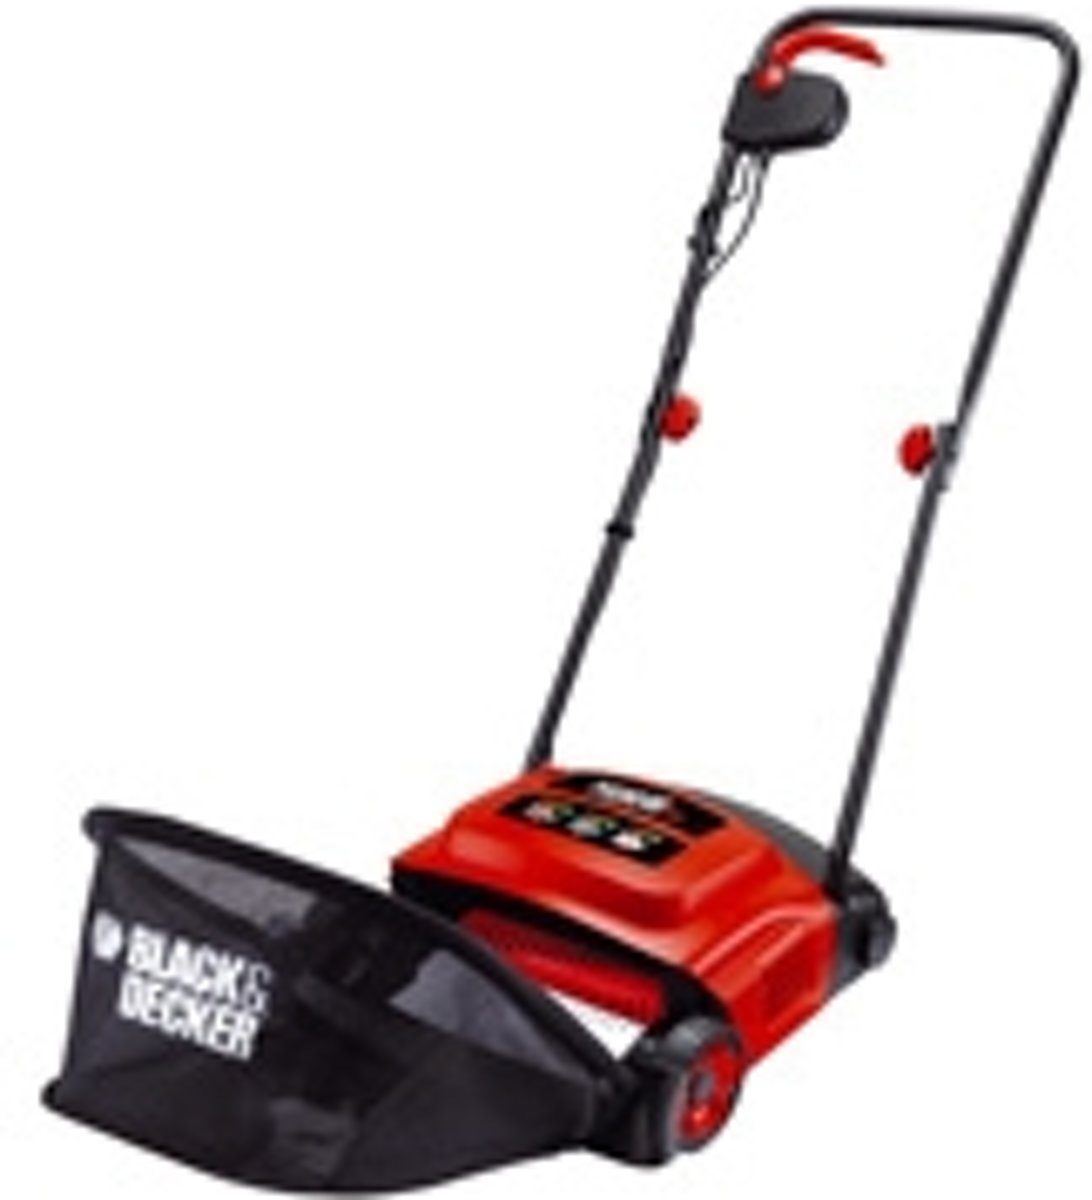 BLACK+DECKER - GD300-QS - Verticuteermachine  - 600W voor €49,73